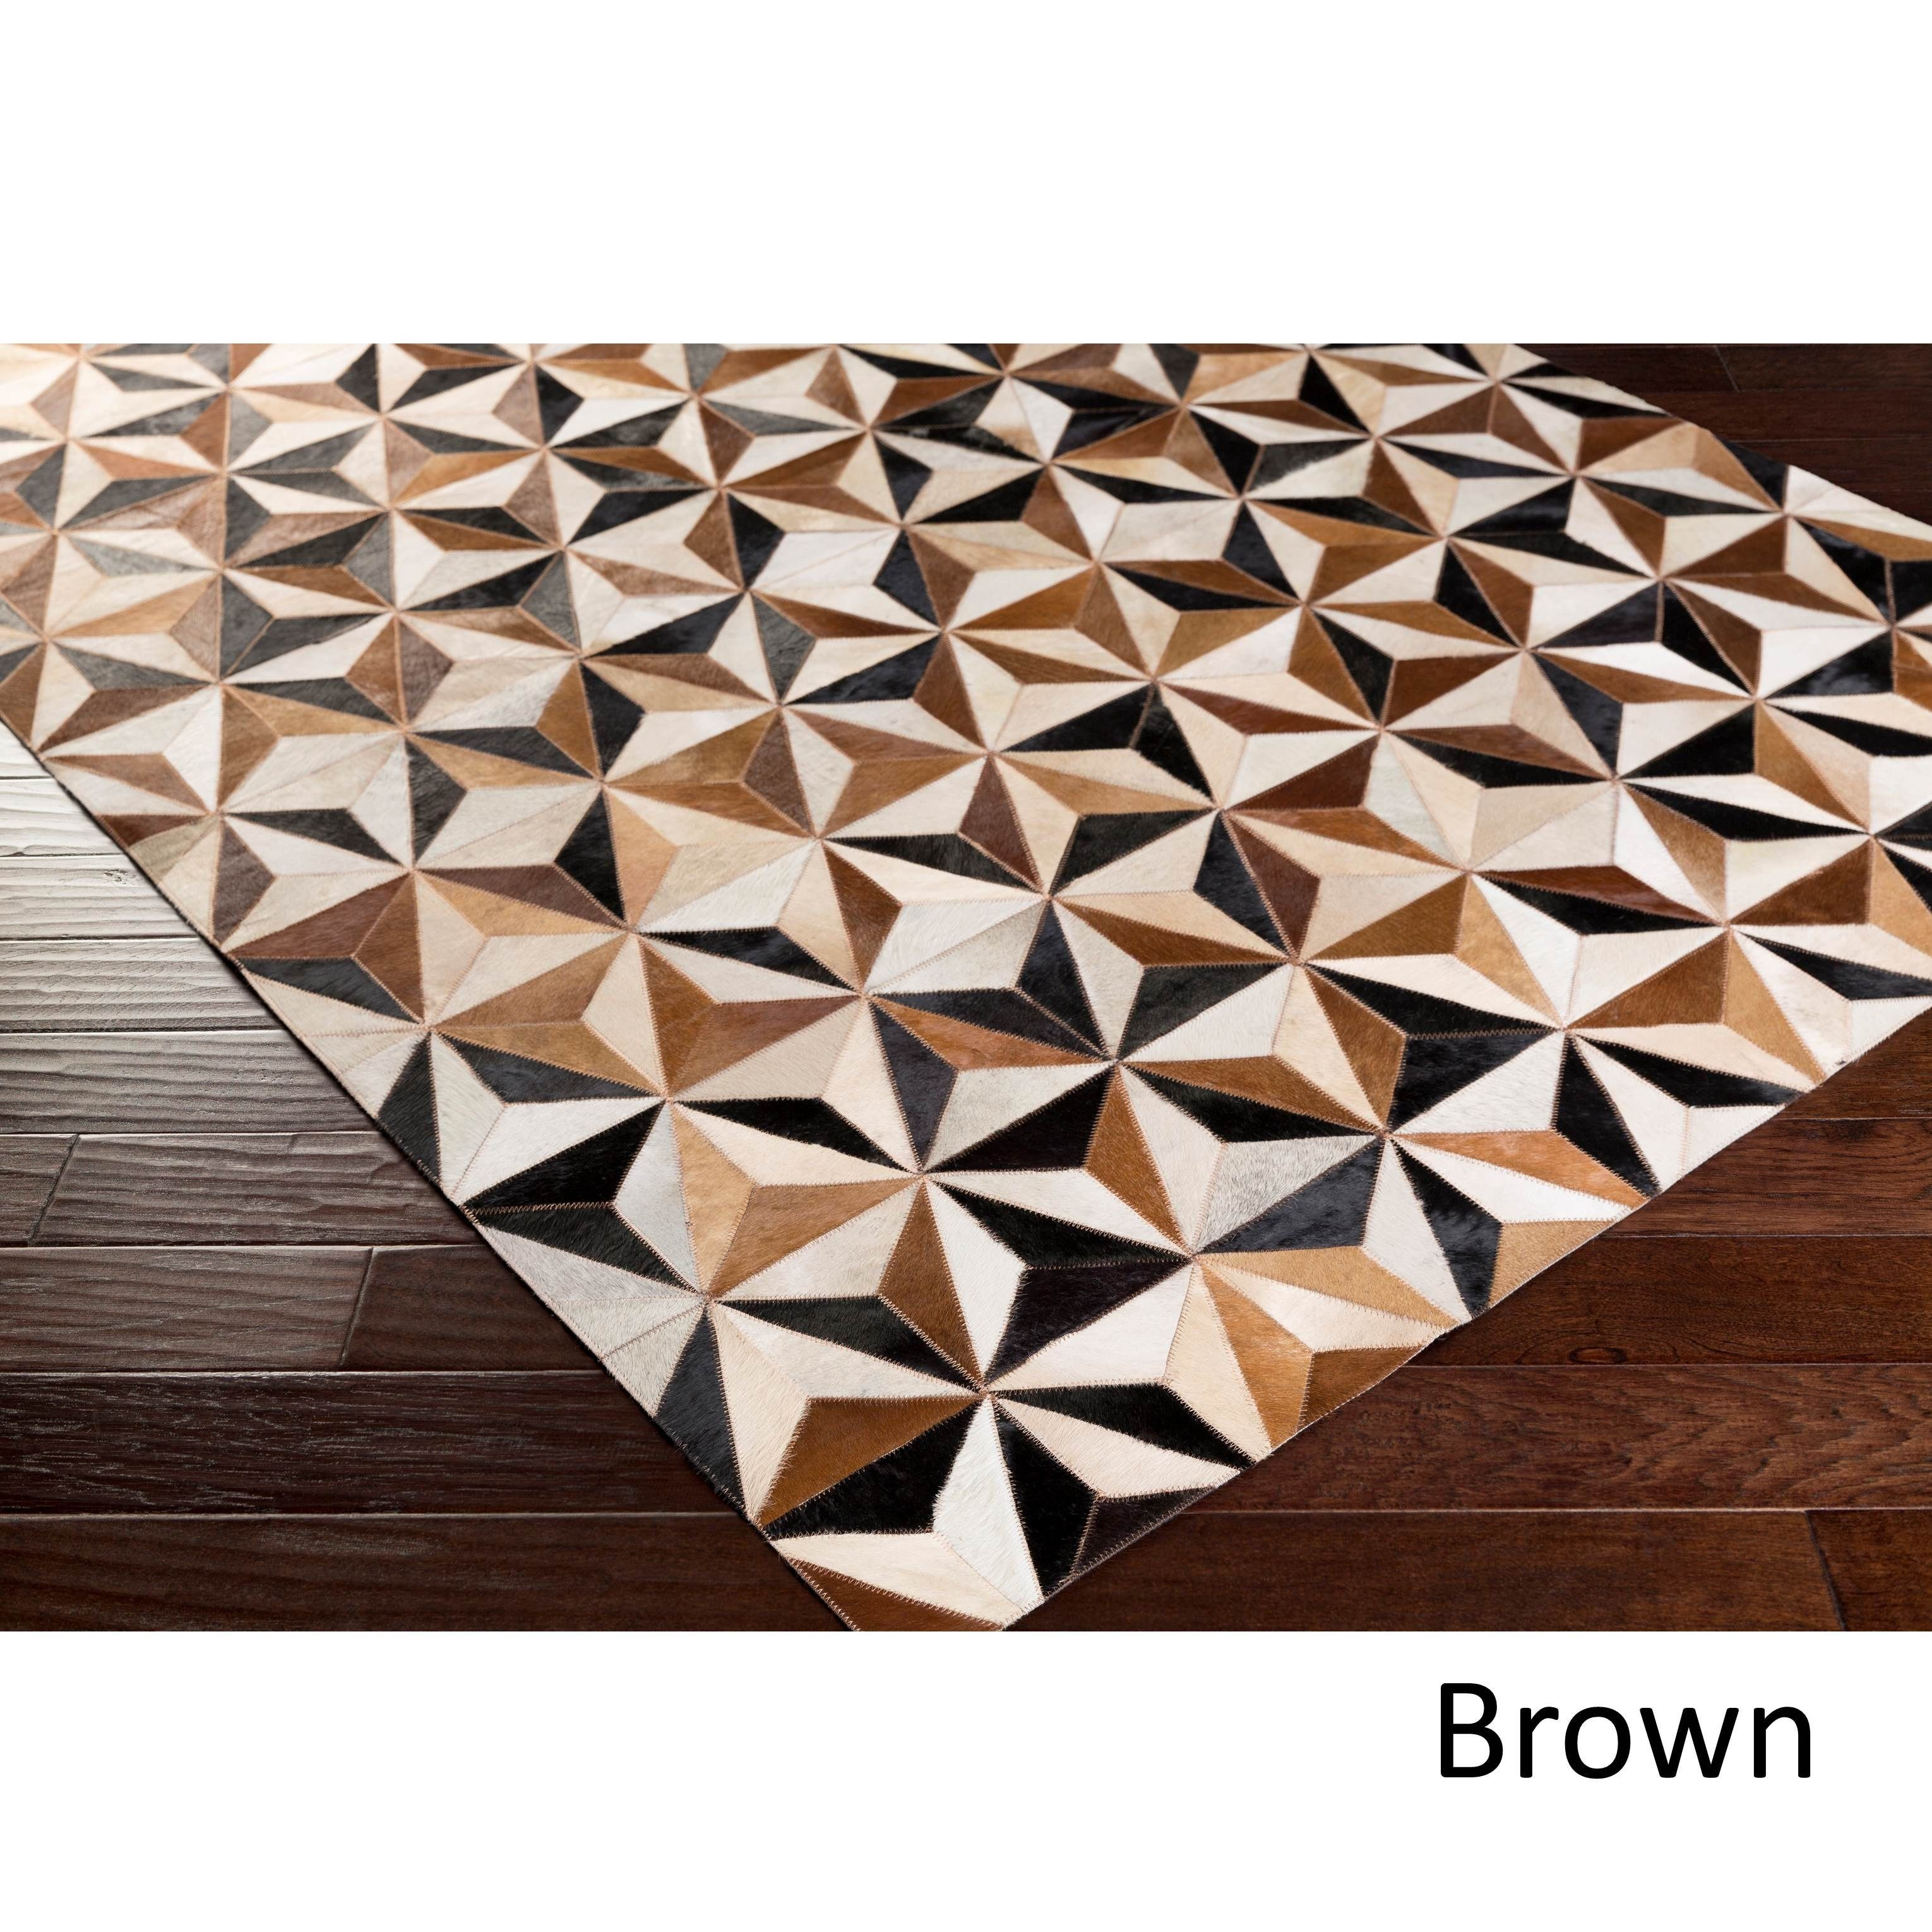 Hand Crafted Osbourne Rug Leather Rug Rugs Colorful Rugs